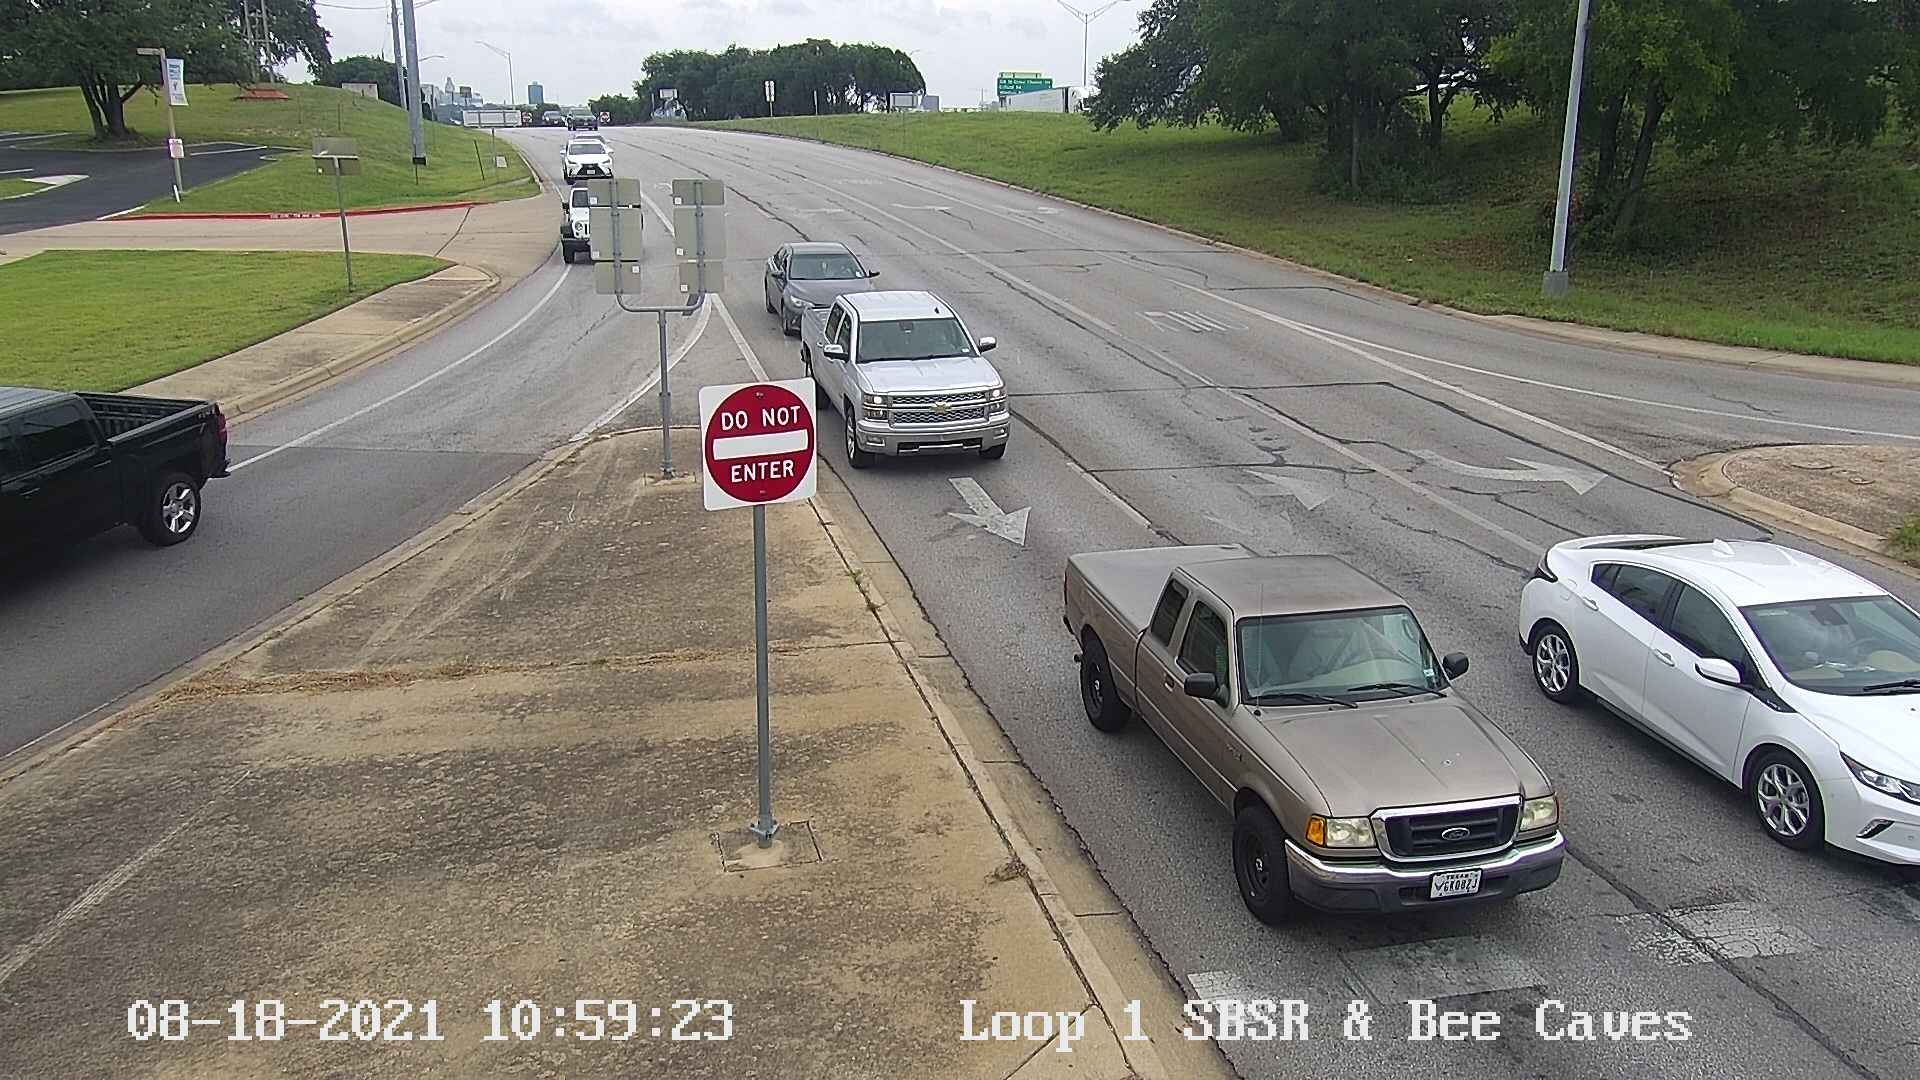 MOPAC EXPY SVRD / BEE CAVES RD